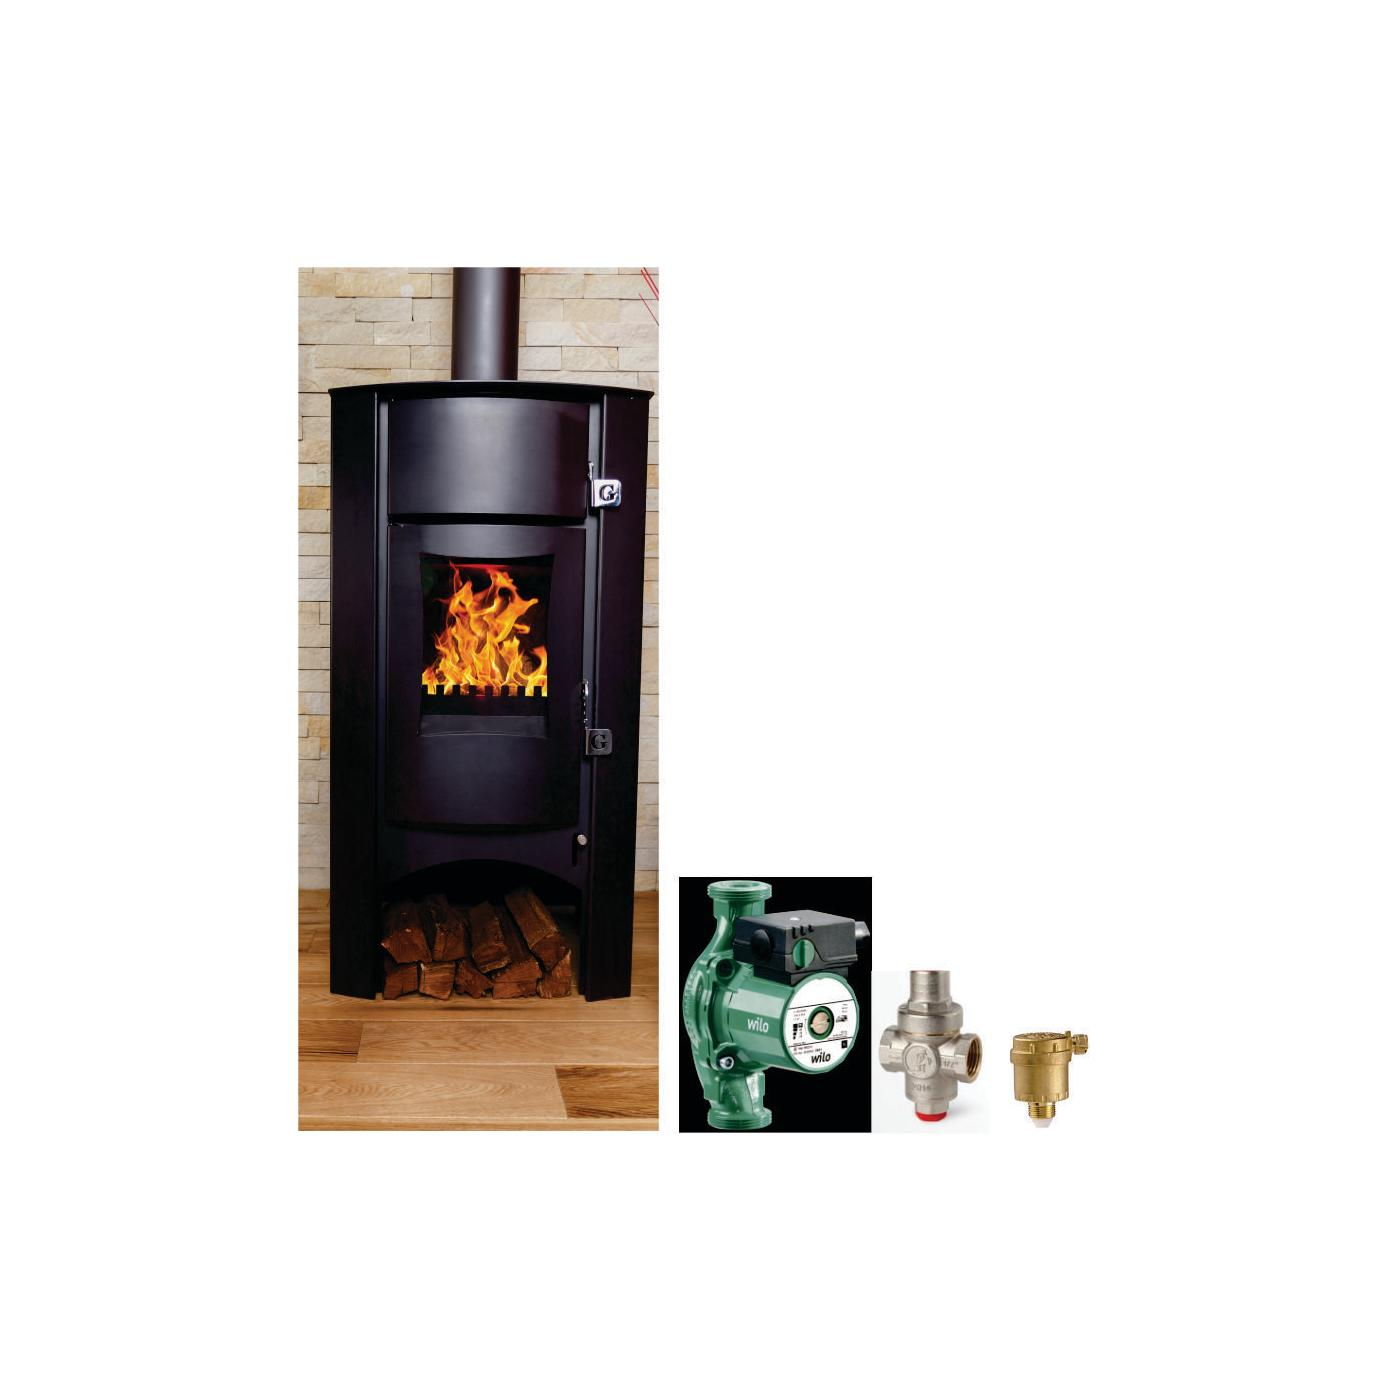 Boilers And Accessories Home Comfort Leroy Merlin South